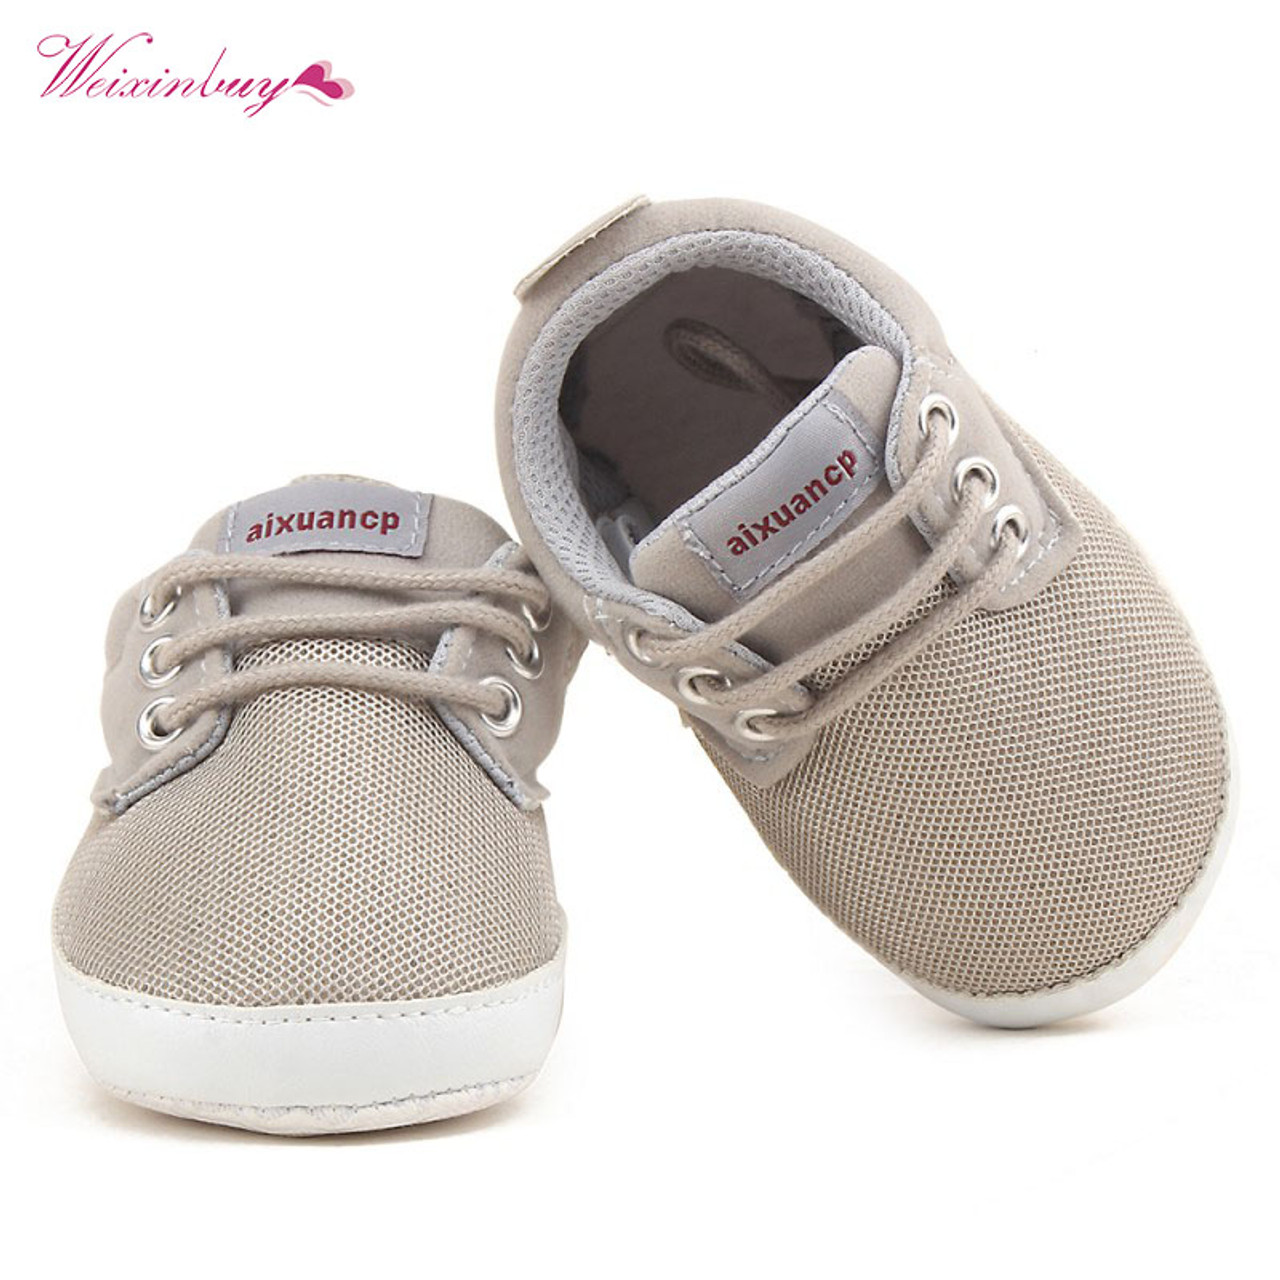 Newborn Crib Shoes Newborn Baby Boy Shoes First Walkers Spring Autumn Baby Boy Soft Sole Shoes Infant Canvas Crib Shoes 18 M